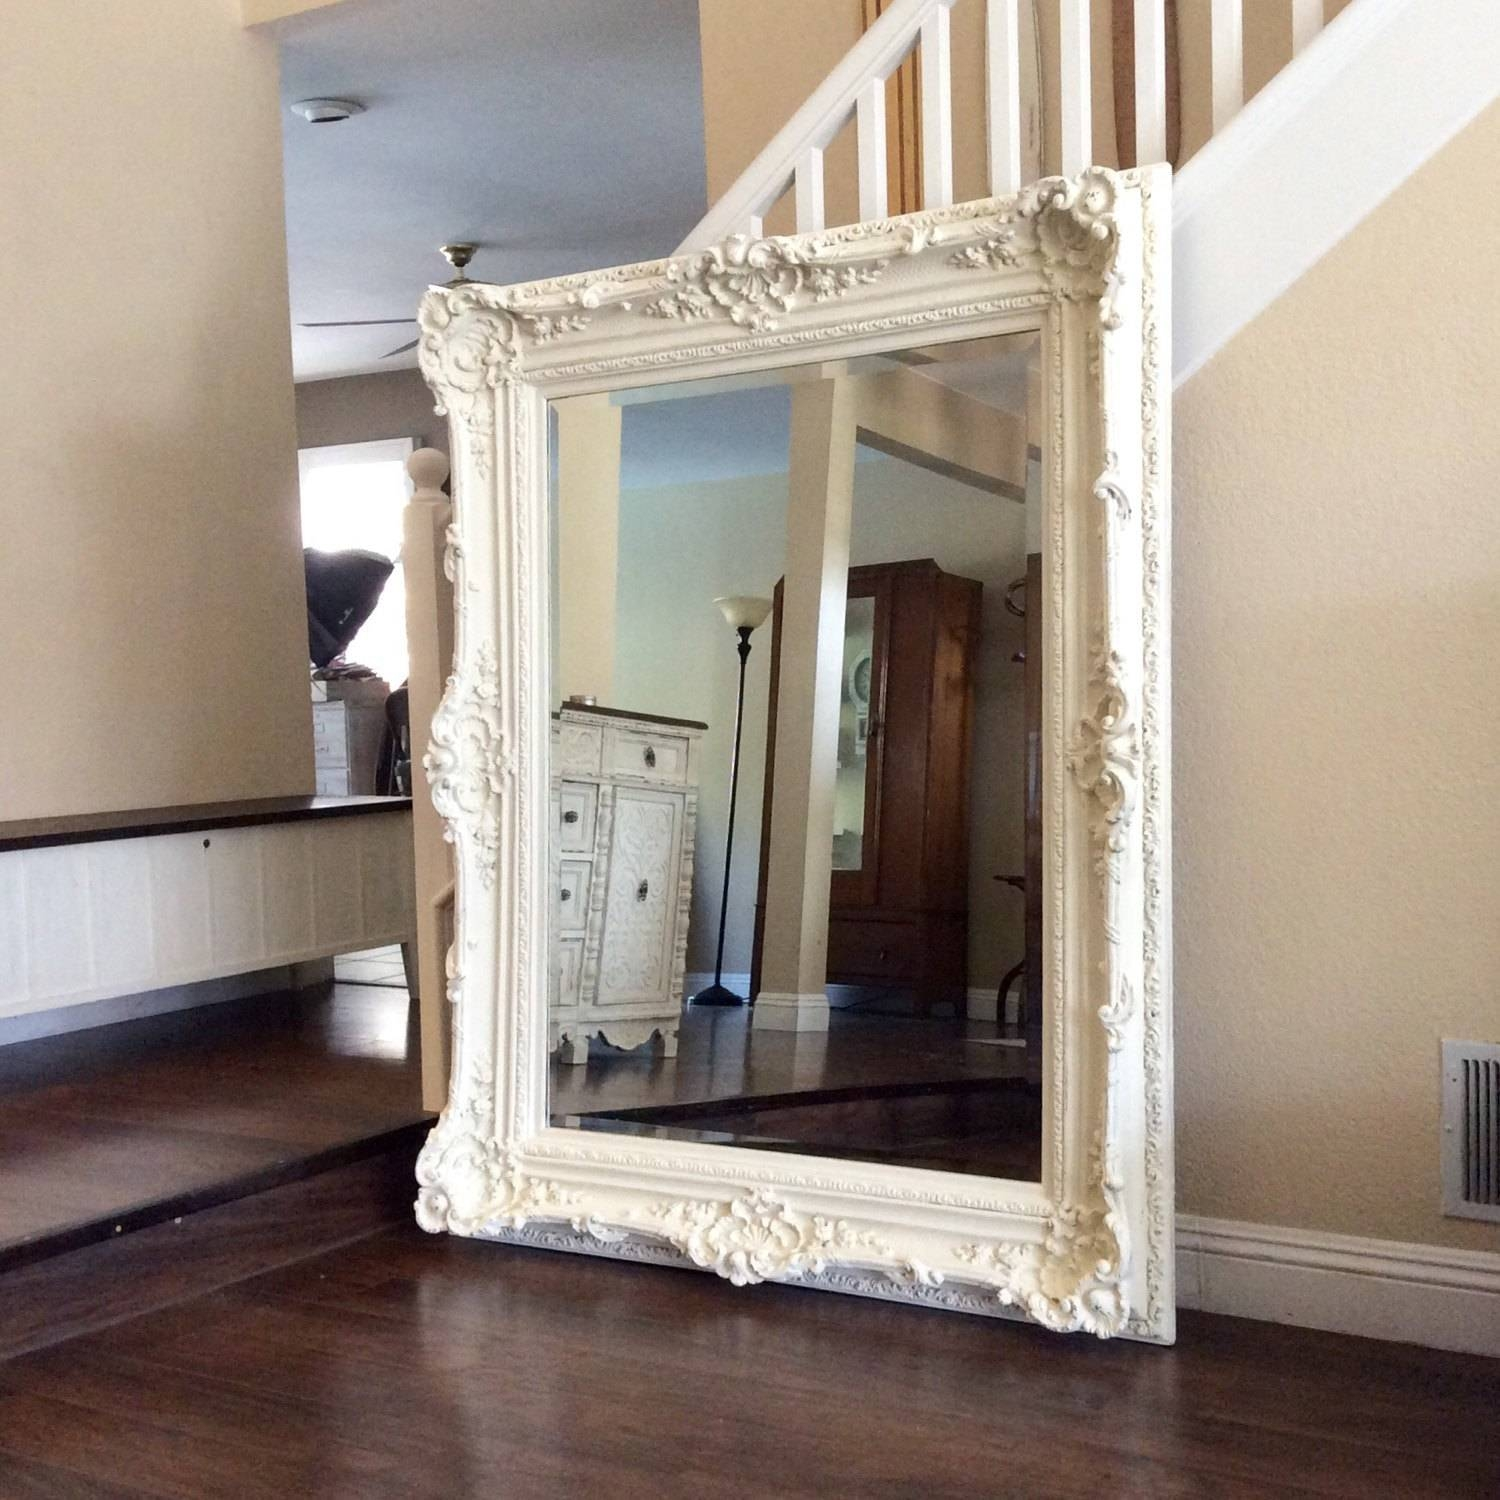 Wall Mirrors For Sale 28 Stunning Decor With Large Gold Very within Large Ornate Mirrors For Wall (Image 25 of 25)